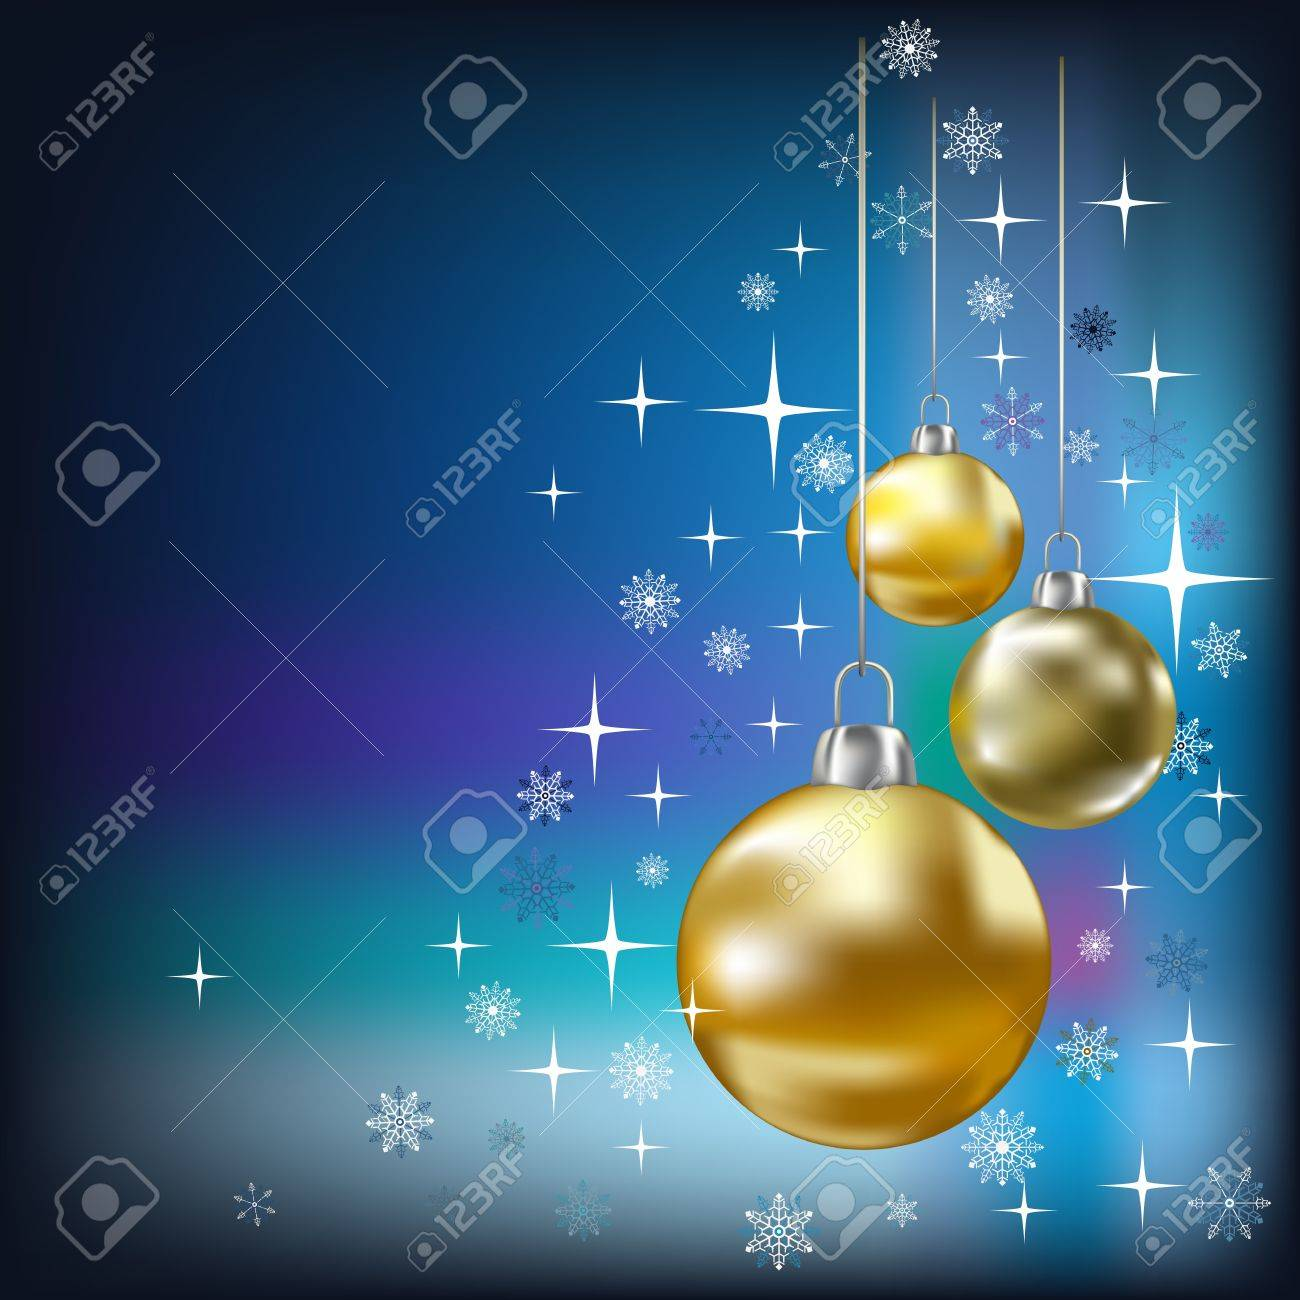 Christmas balls and stars blue  background Stock Vector - 7833743